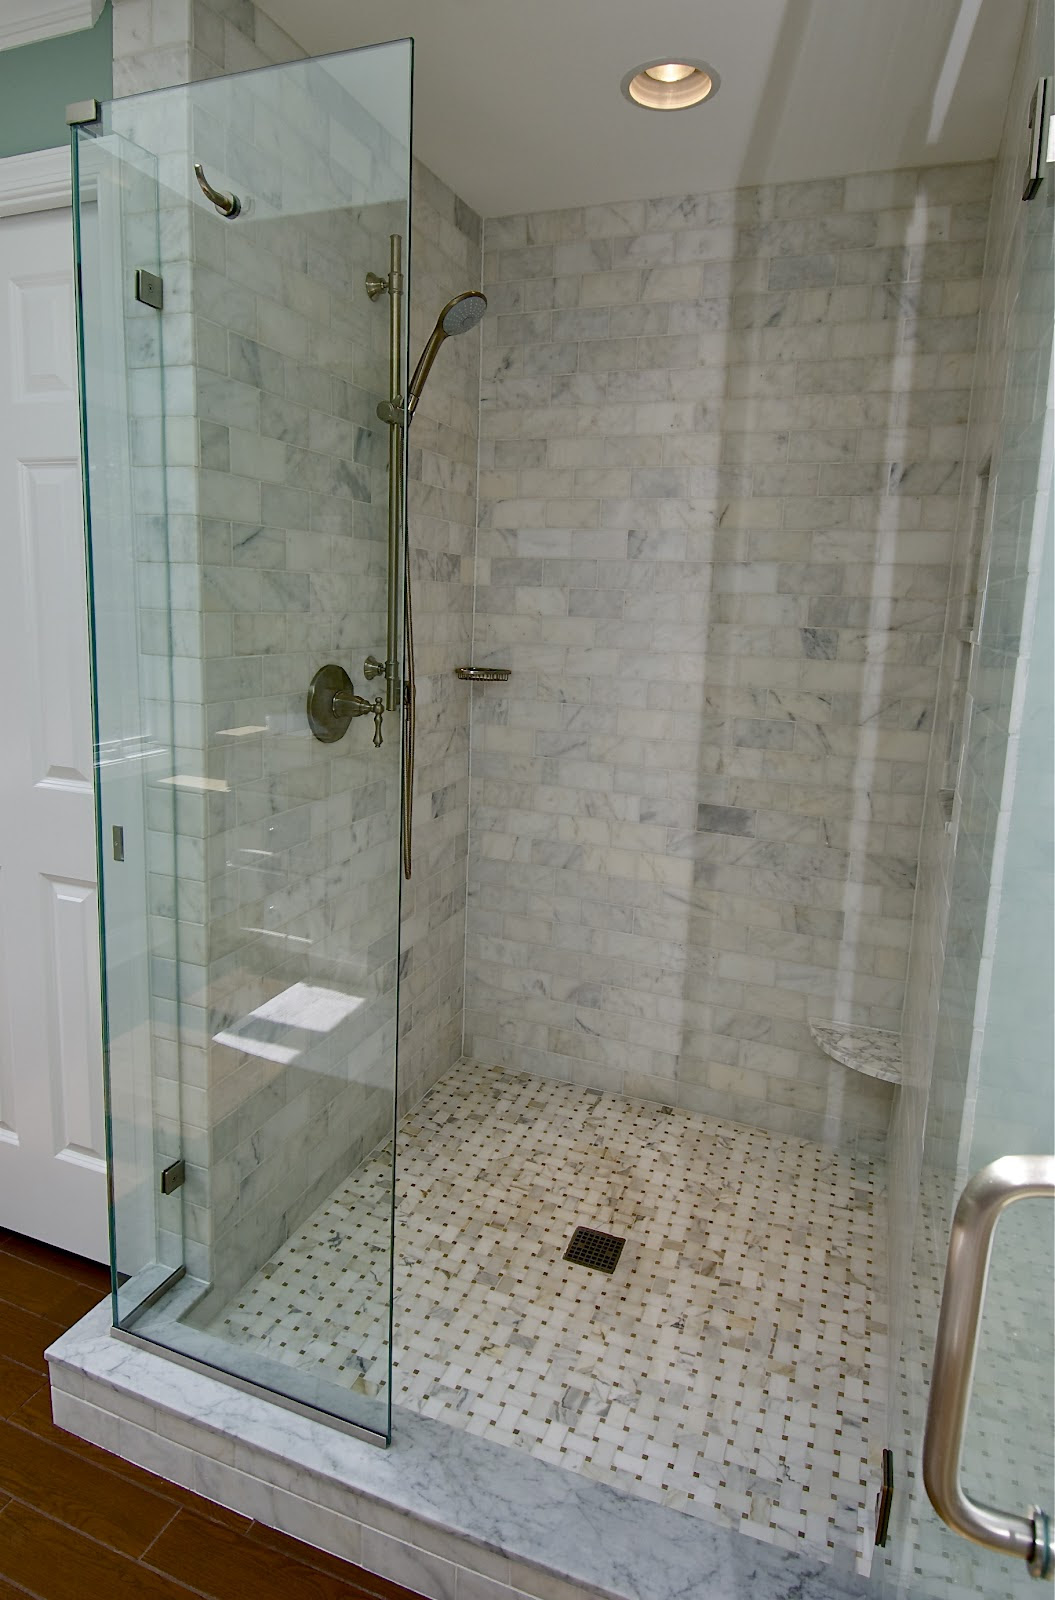 Marble Subway Tile Shower Offering the Sense of Elegance ...